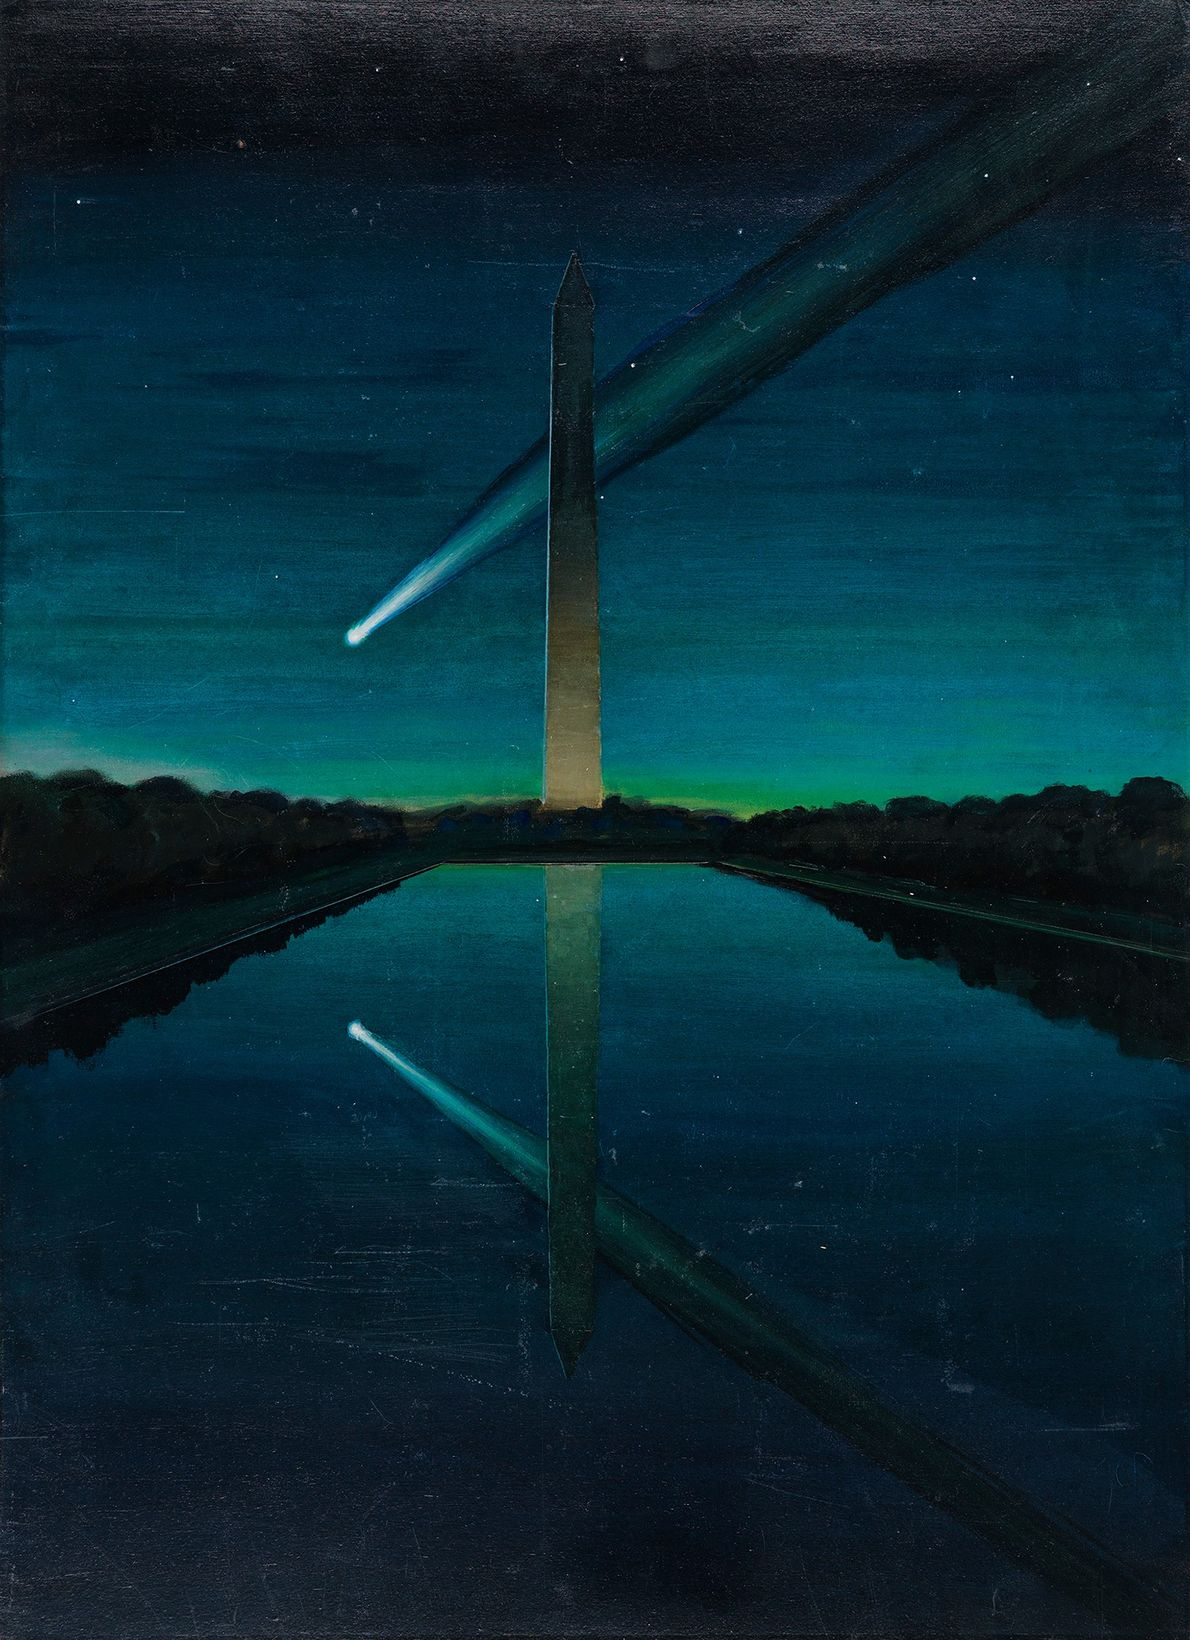 A comet with a spectacular tail seems to glide past the Washington Monument in the nation's ...